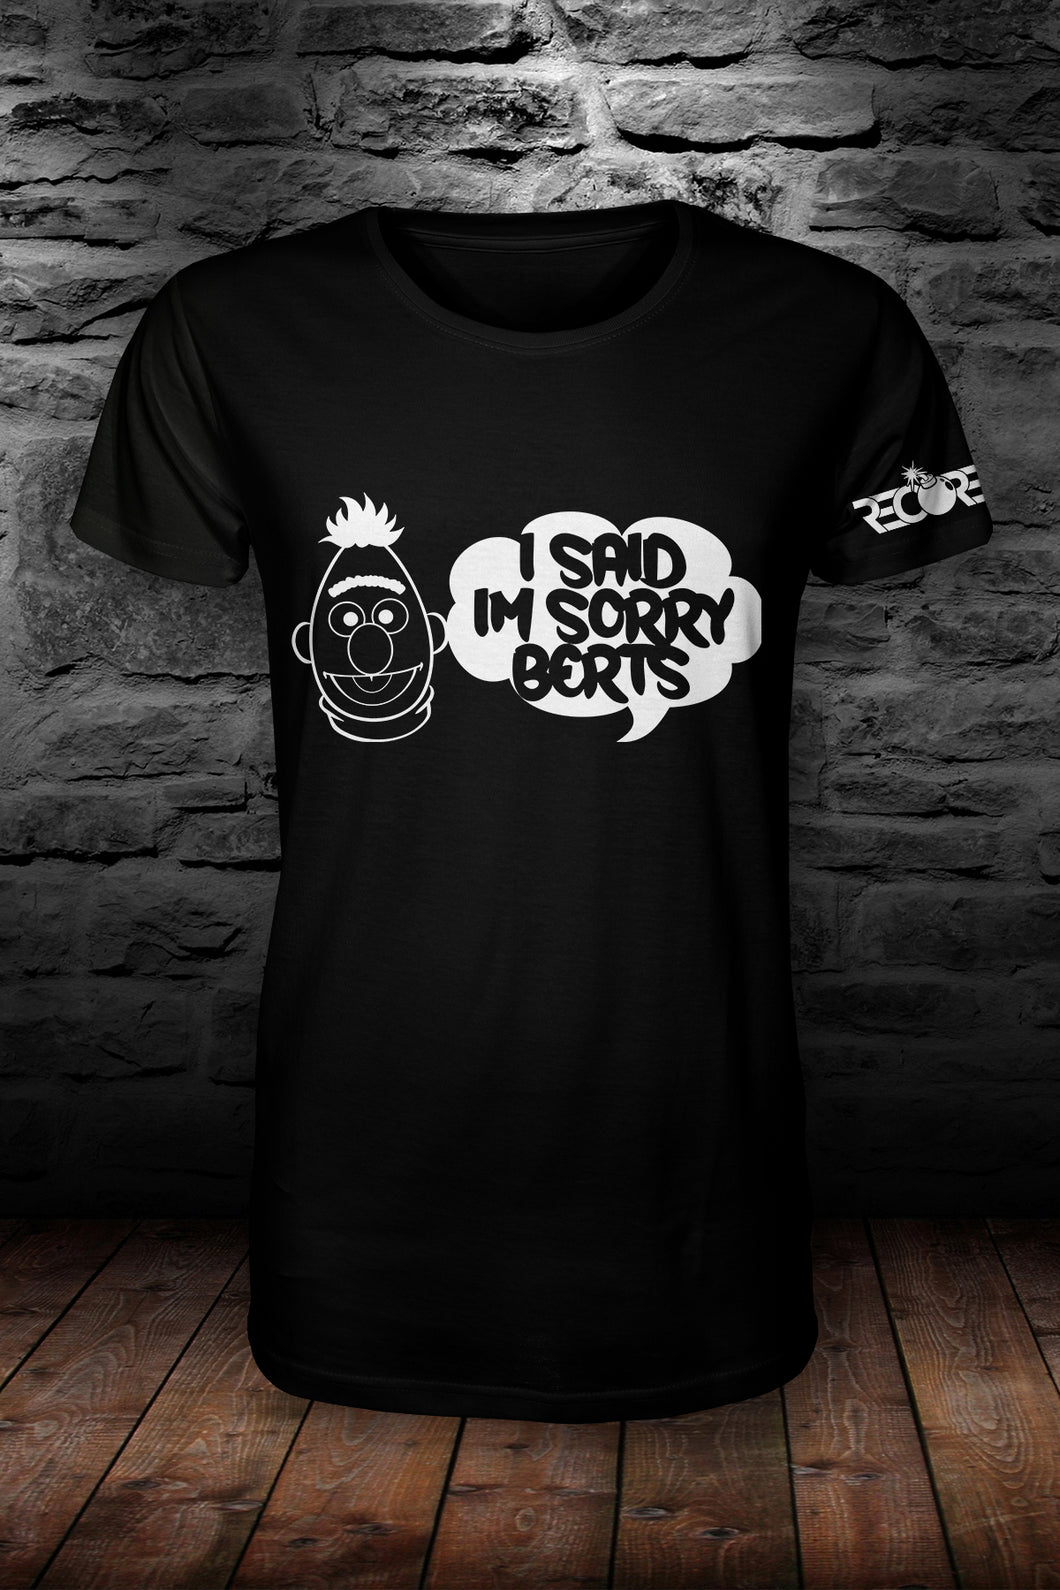 ReCore i said im sorry berts t shirt black & white